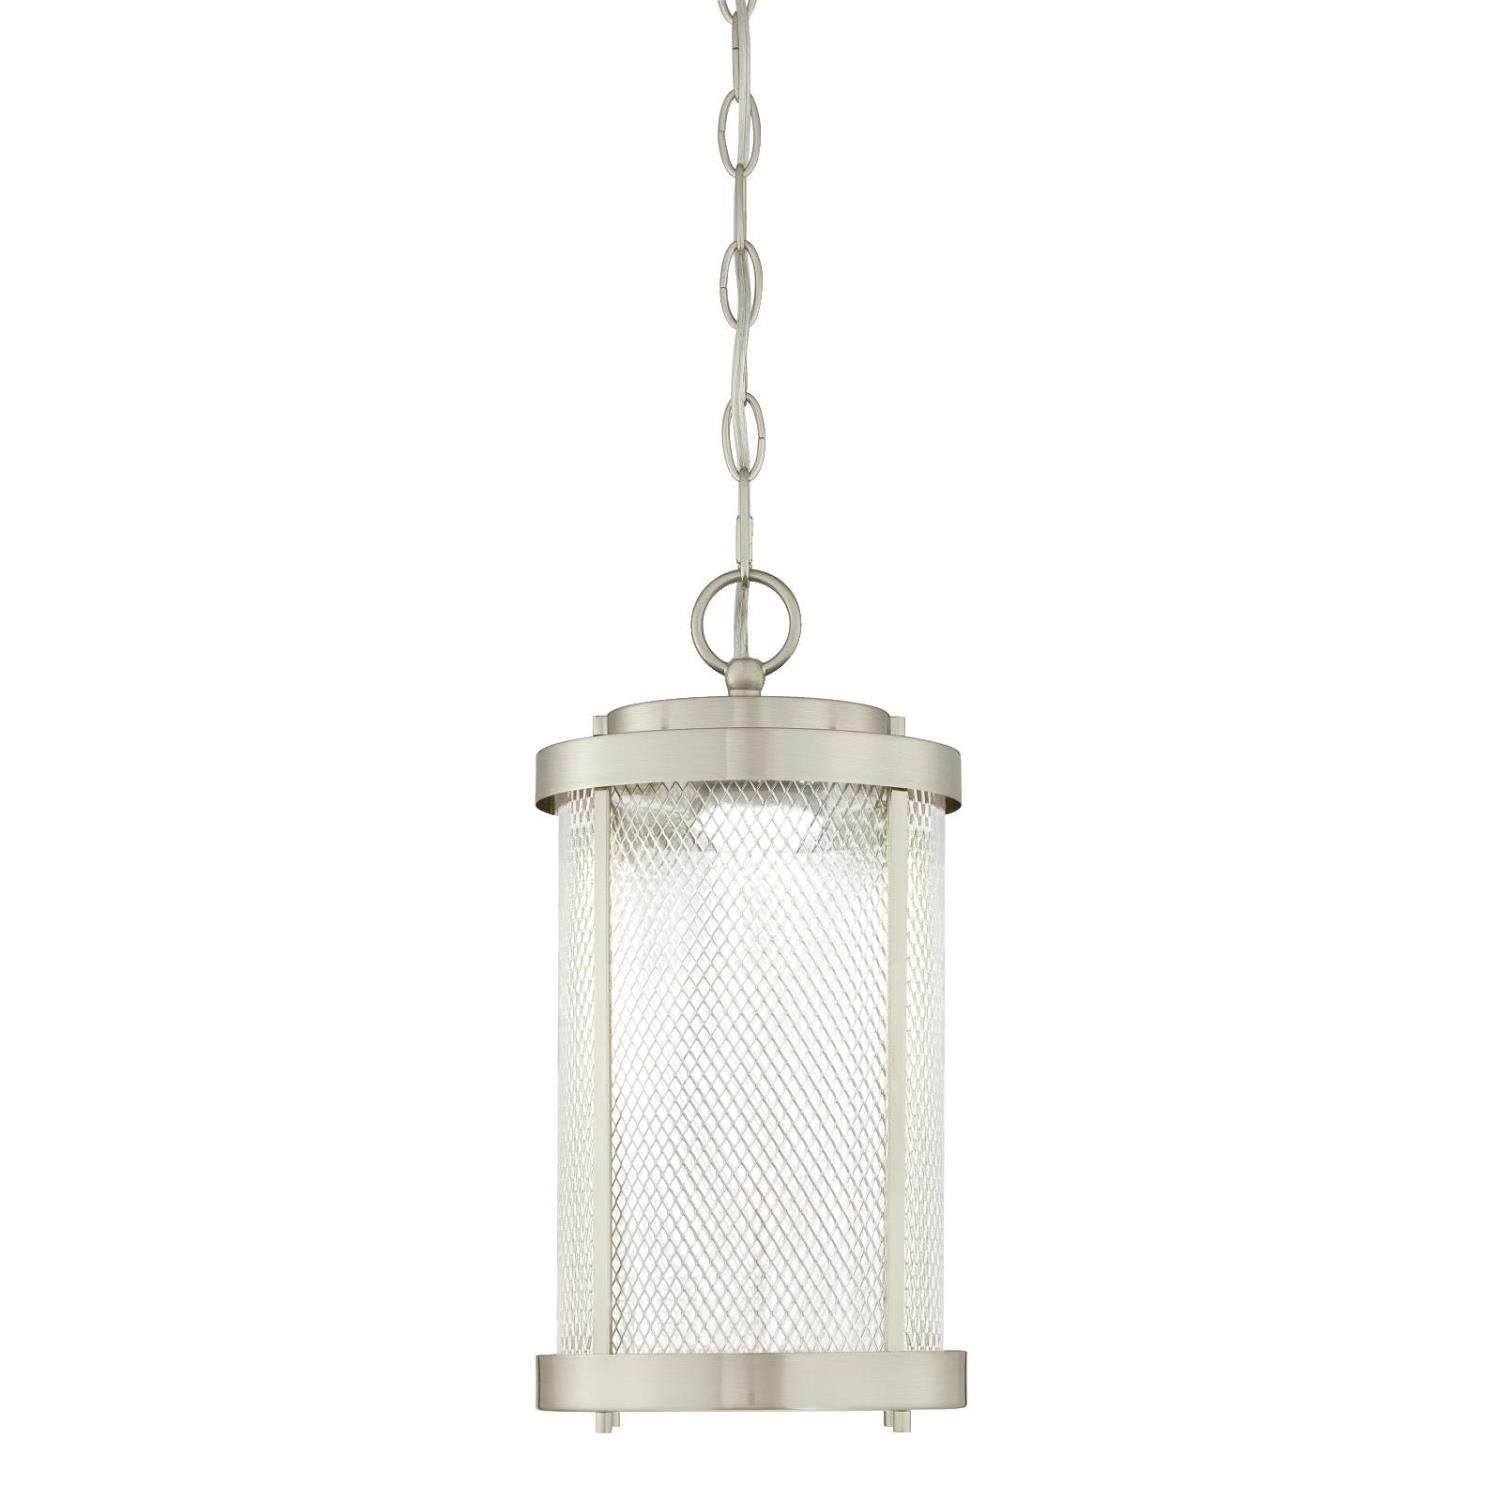 Westinghouse 6312224 Skyview One-Light LED Outdoor Pendant, Brushed Nickel Finish with Mesh and Clear Glass by Westinghouse